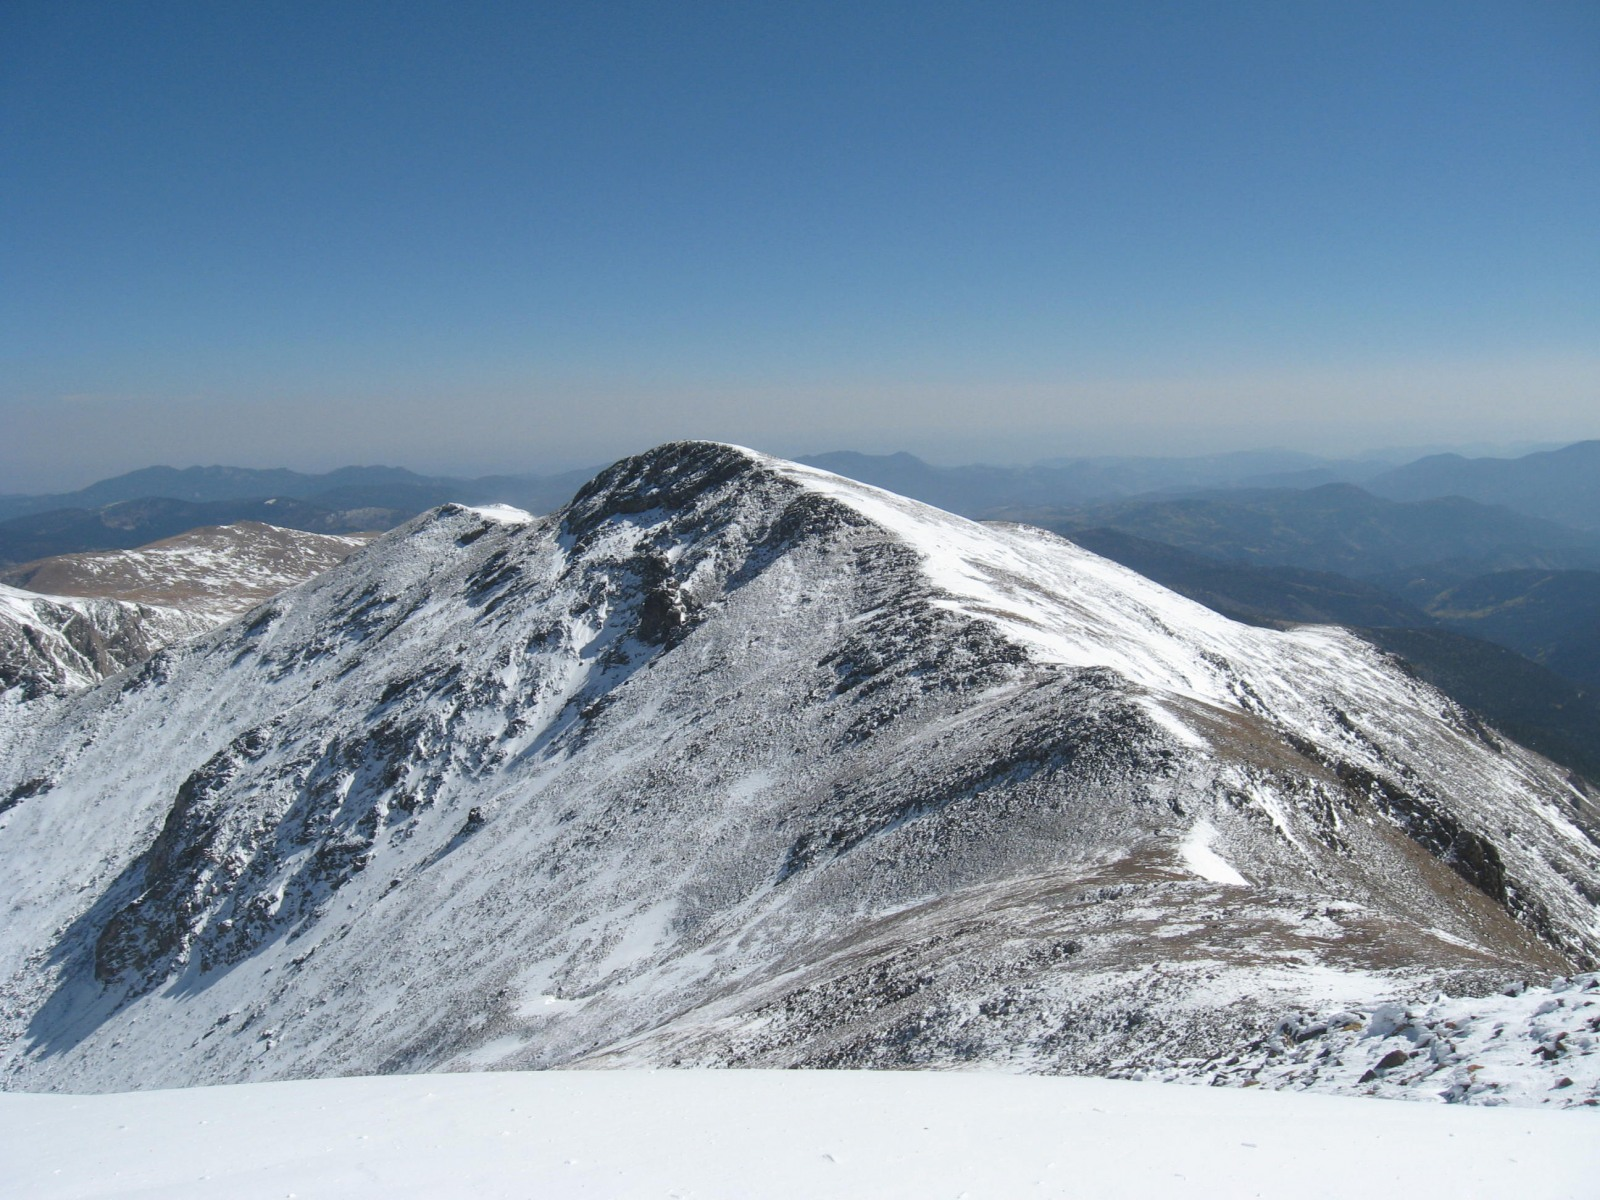 Mt. Bancroft viewed from Parry Peak